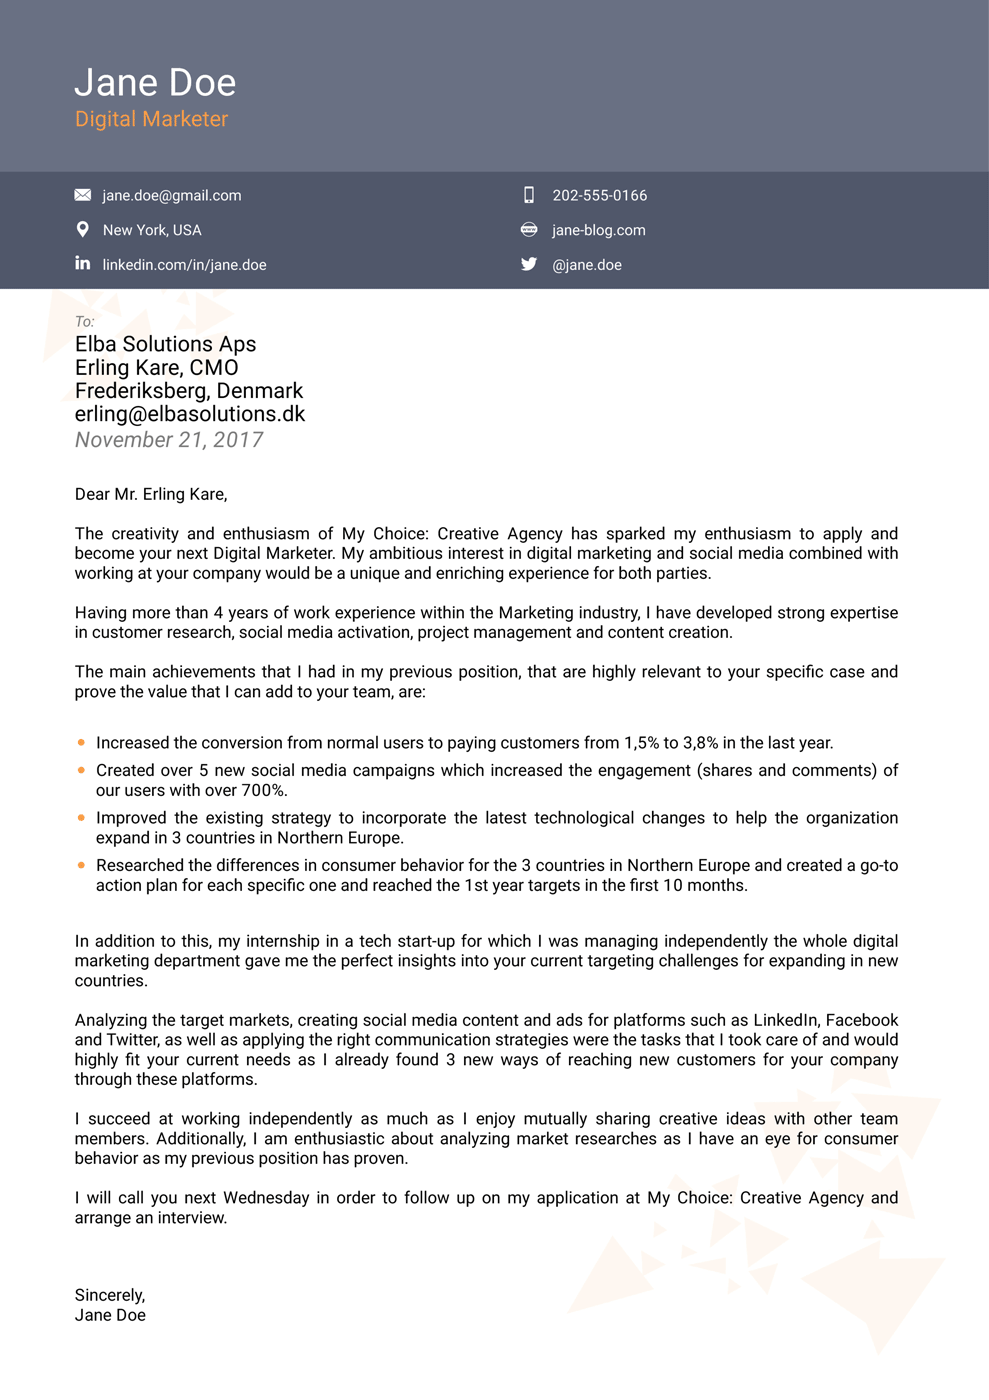 2018 professional cover letter templates